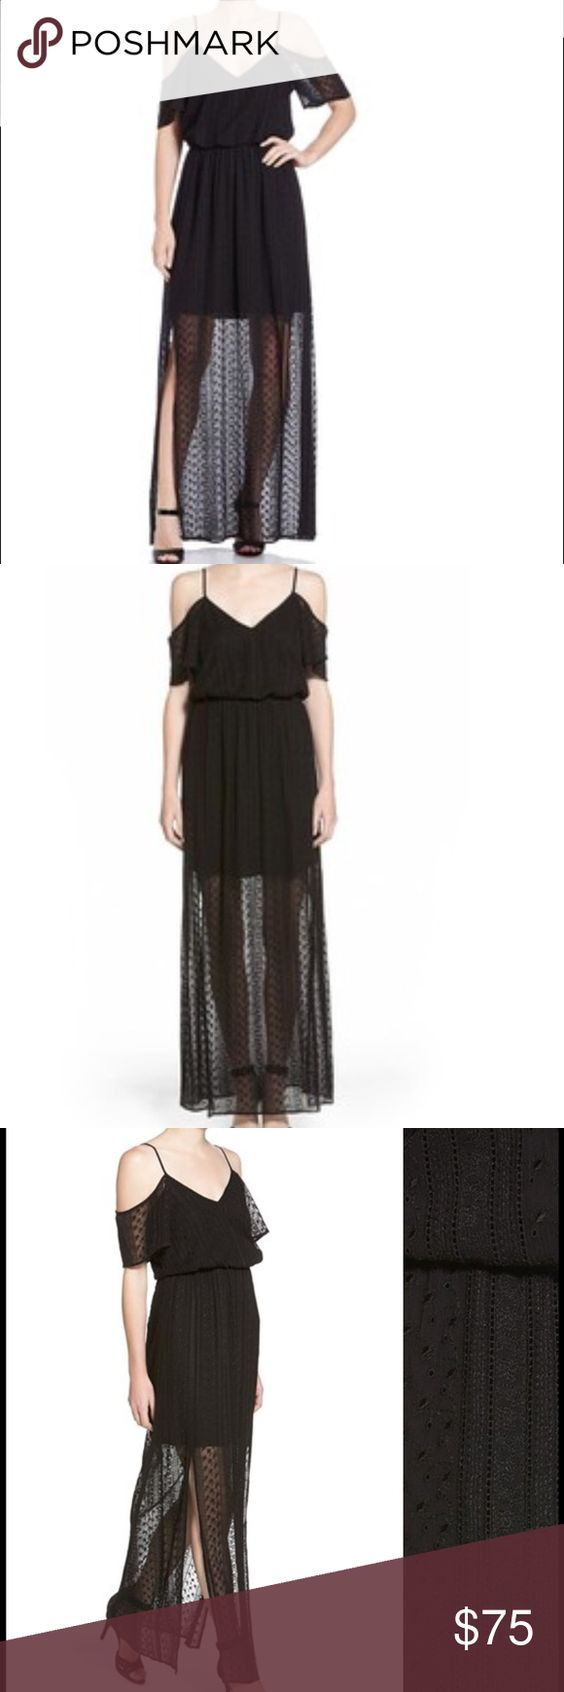 Ella Moss Lace Maxi Dress An overlay of lacy eyelets and openwork crochet creates a sheer hem on a pleated maxi dress framed with flirty flutter sleeves. Gently gathered waist and adjustable straps. Worn a couple times, in great condition Ella Moss Dresses Maxi